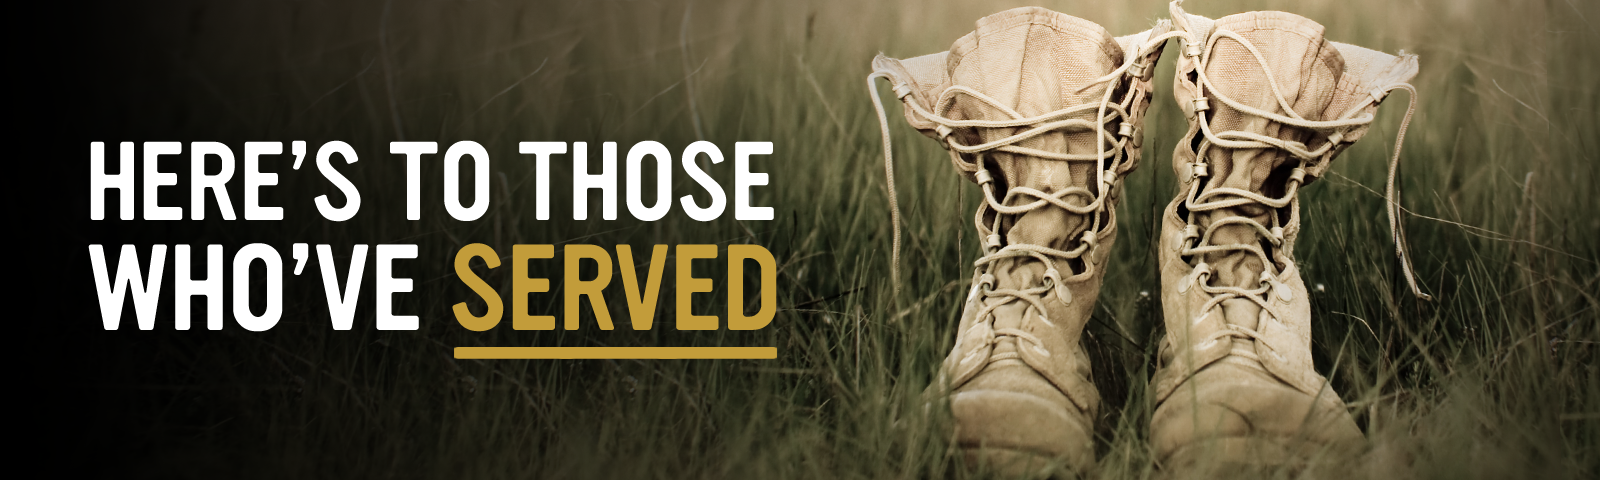 Boots Campaign Memorial Day